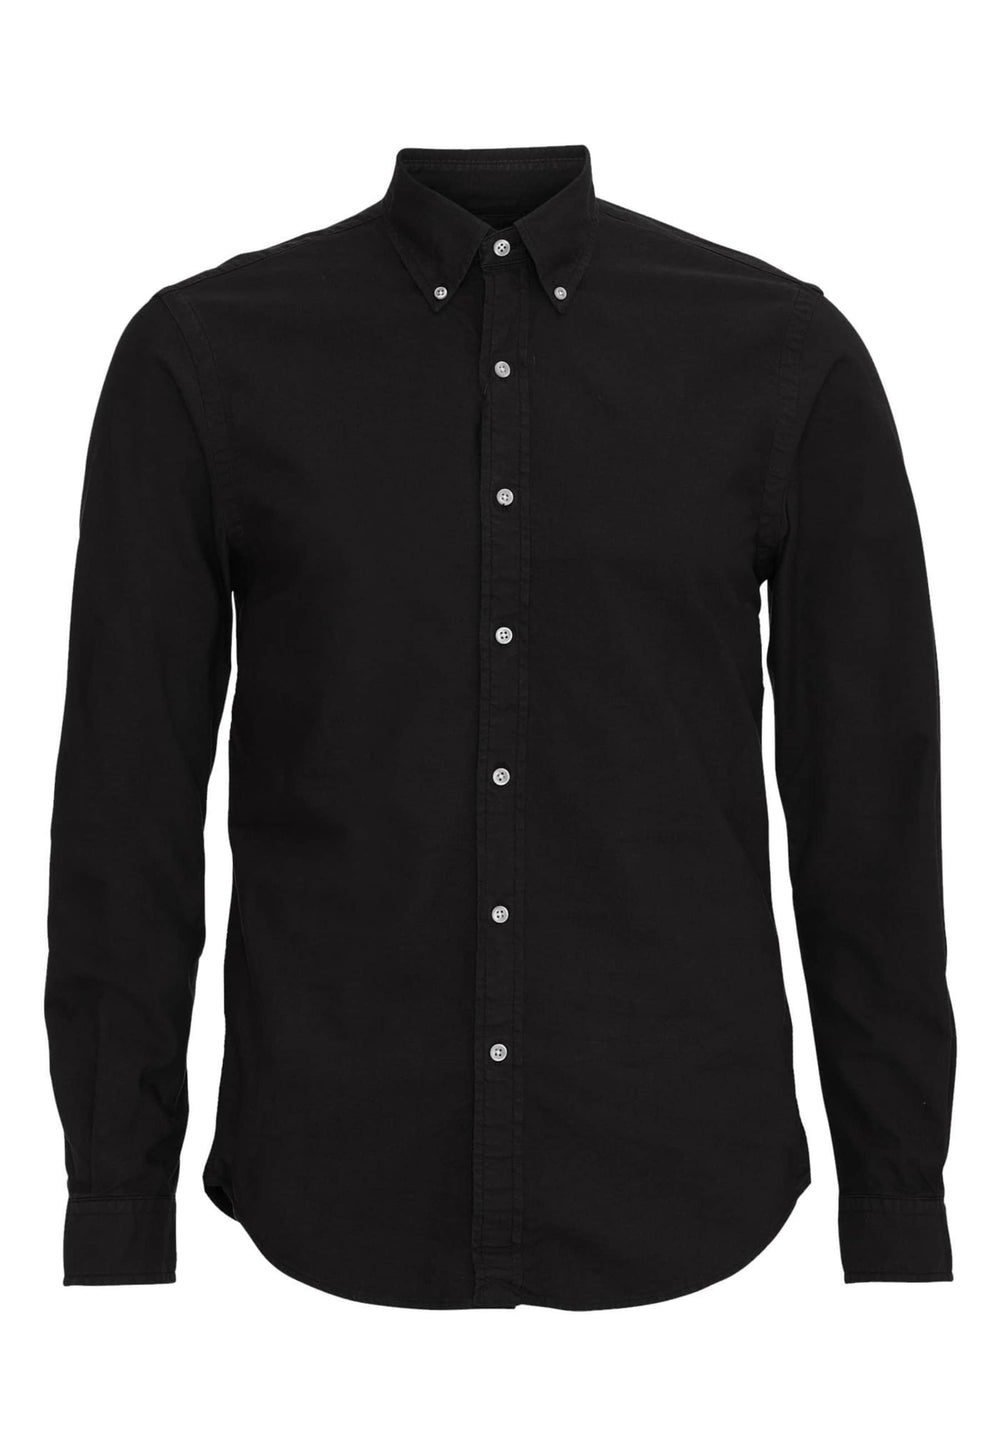 Colorful Standard Shirts Chemise à bouton DownDeep Black